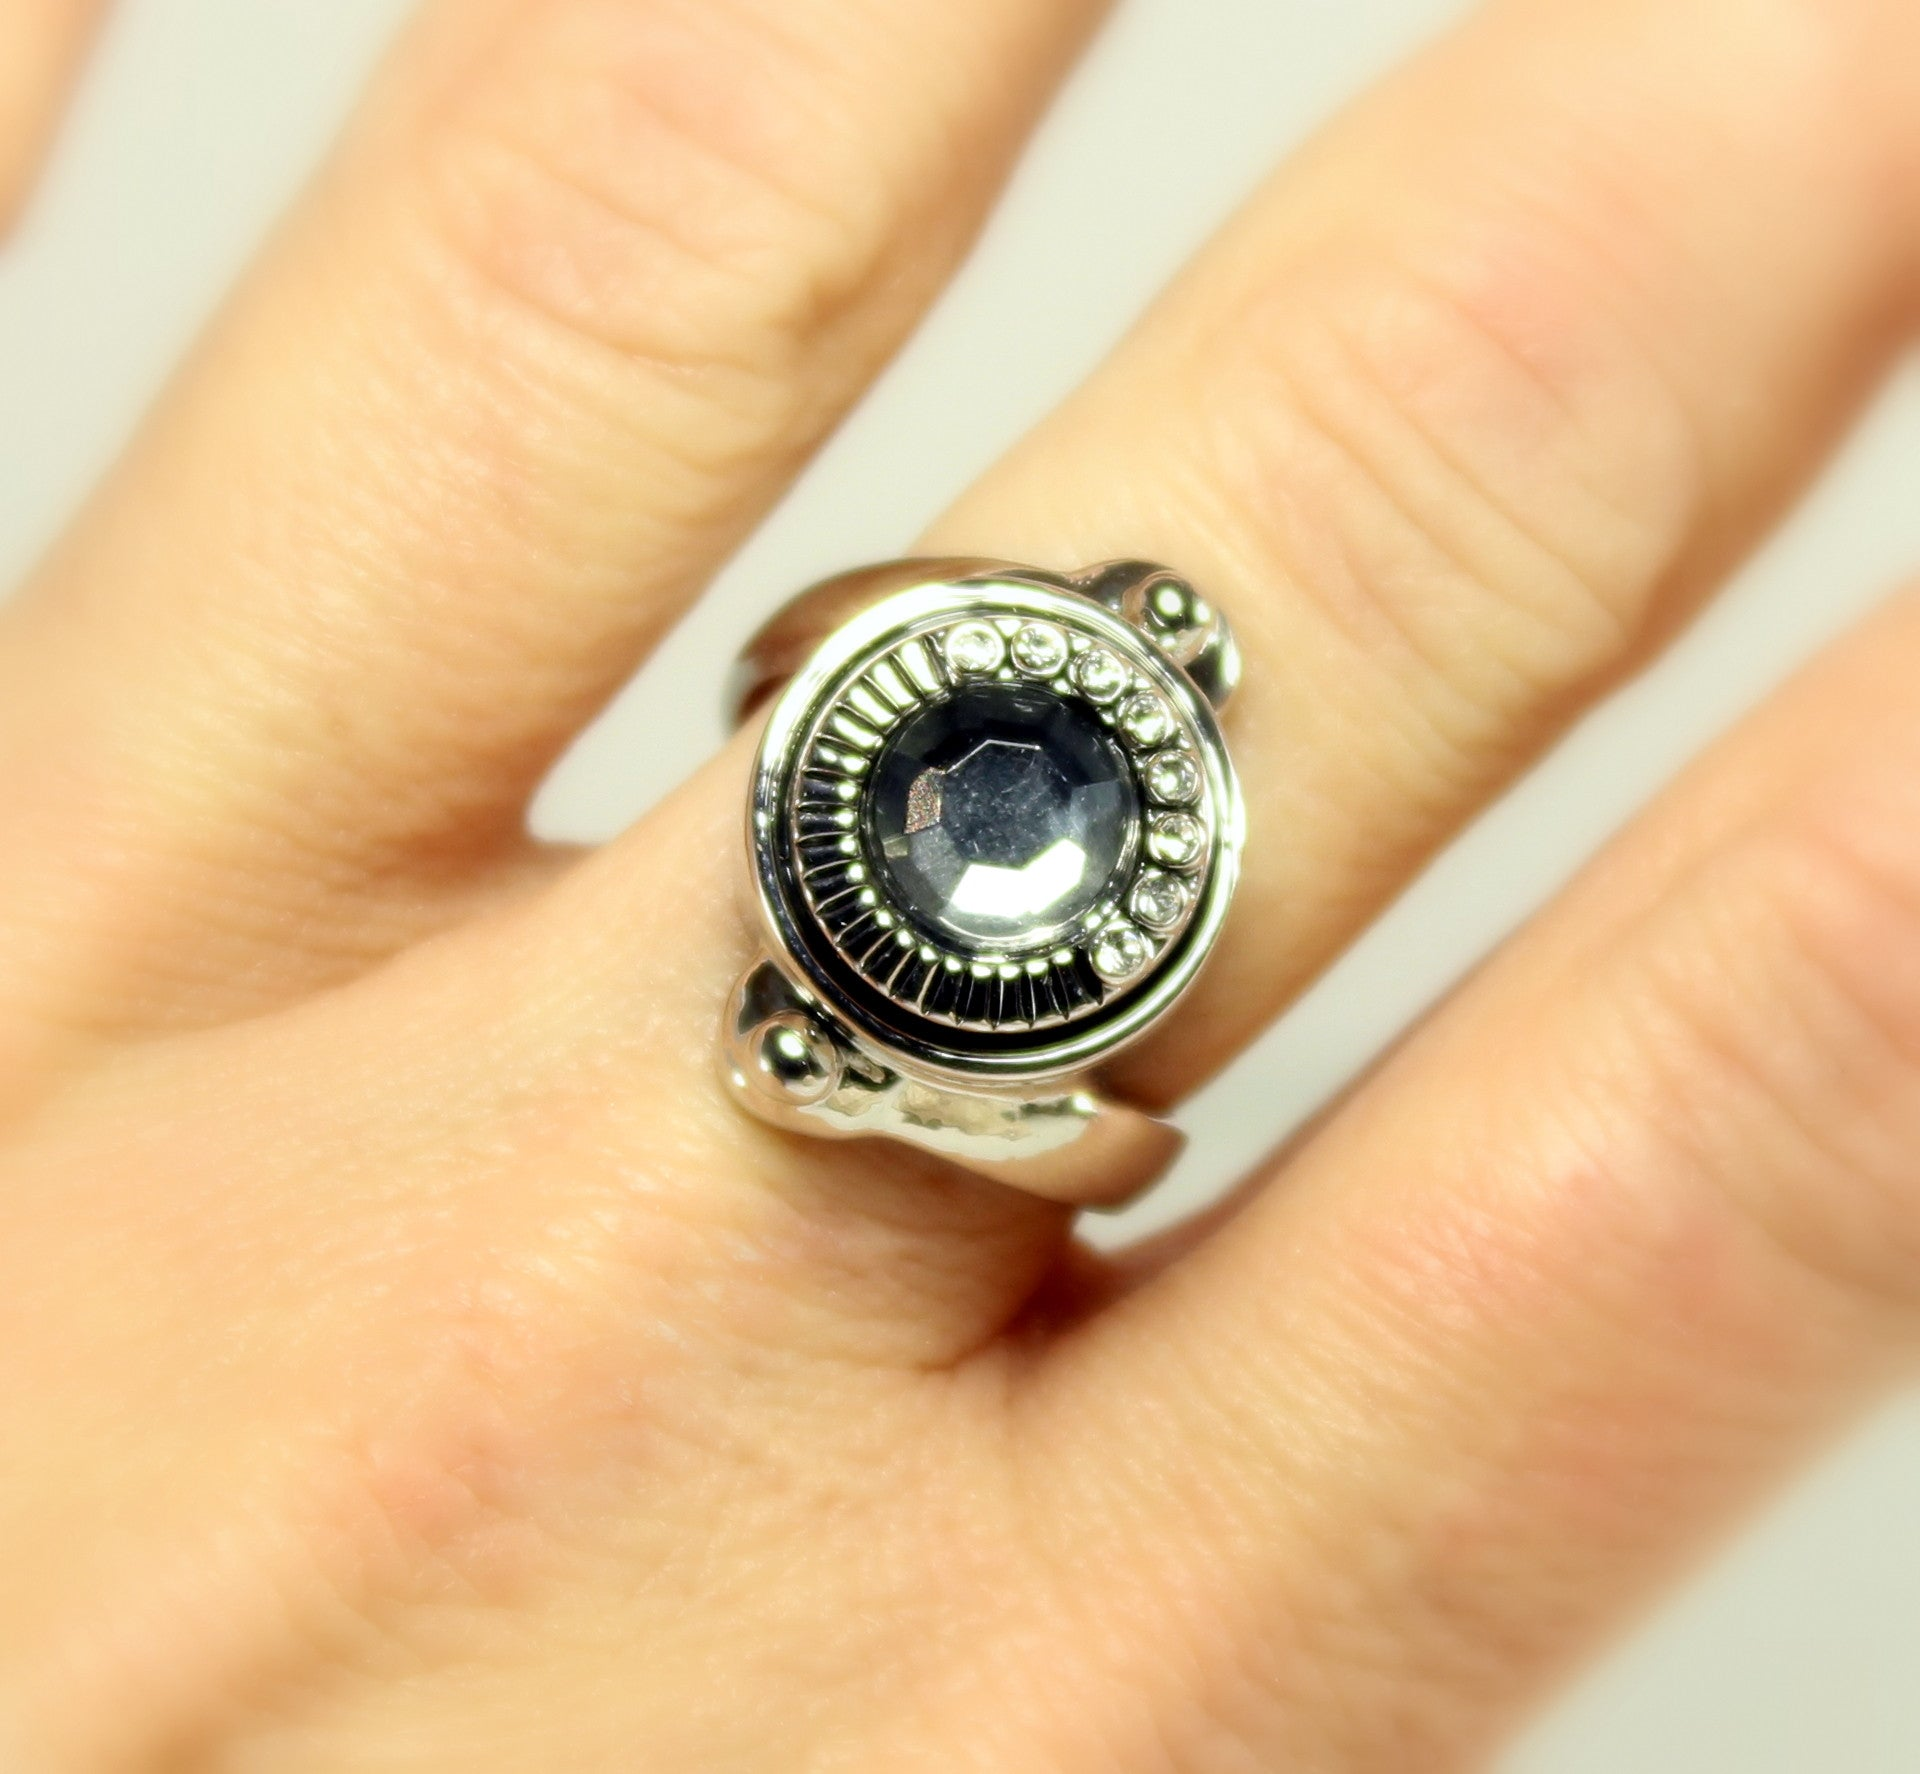 Sparkle Snap Ring-Size 8 (fits small 12mm Sparkle Snaps only)